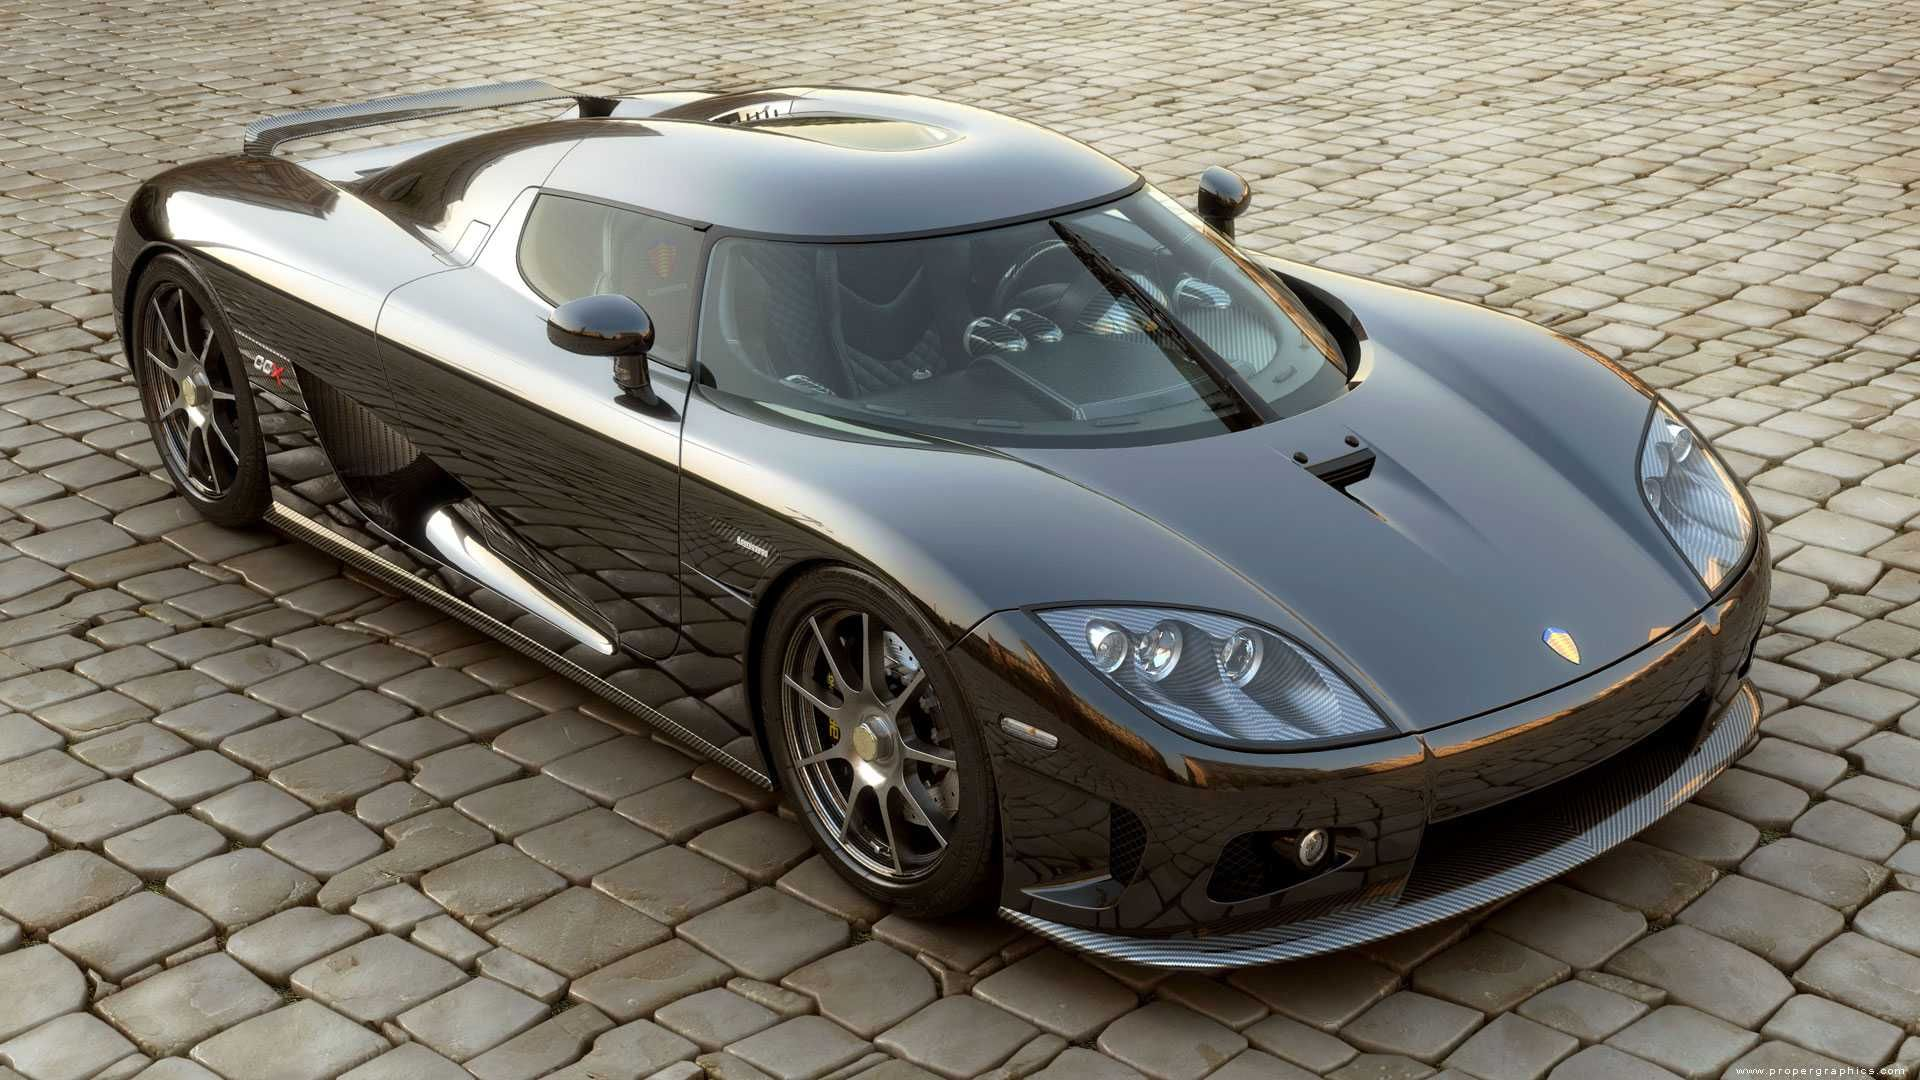 Top 2014 And 2015 Cars | Related Pictures Fastest Cars In The World Top 10  List